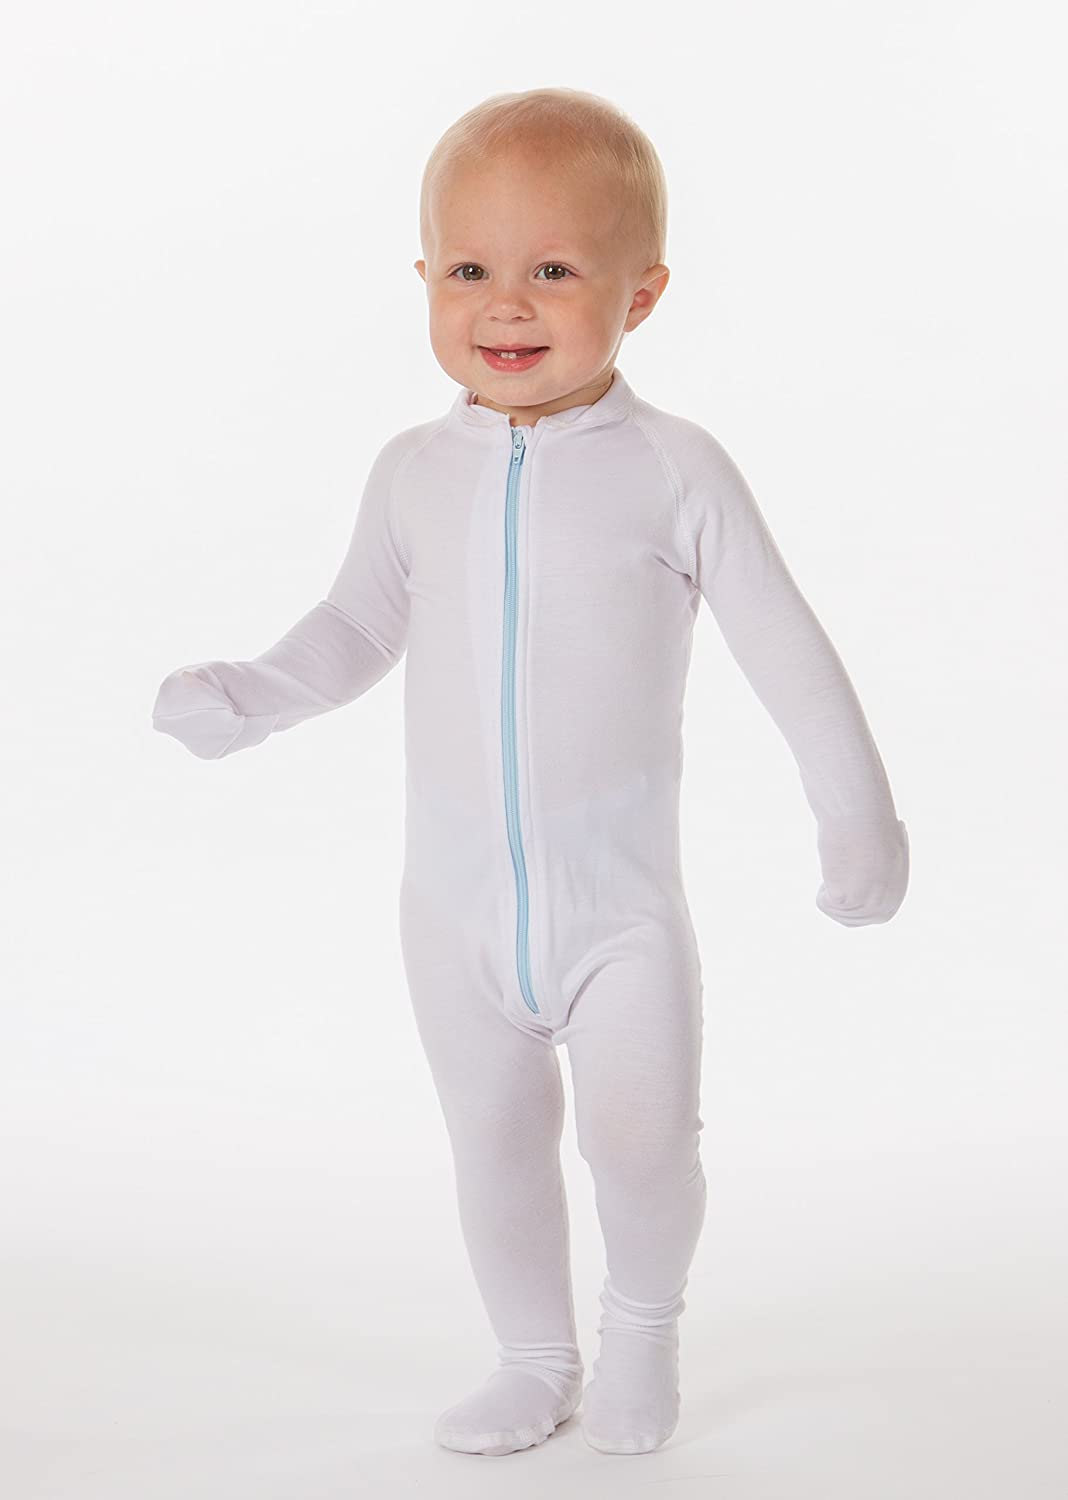 Best Baby Clothes – Best Onesies For Sensitive Skin And Eczema in 2019 15